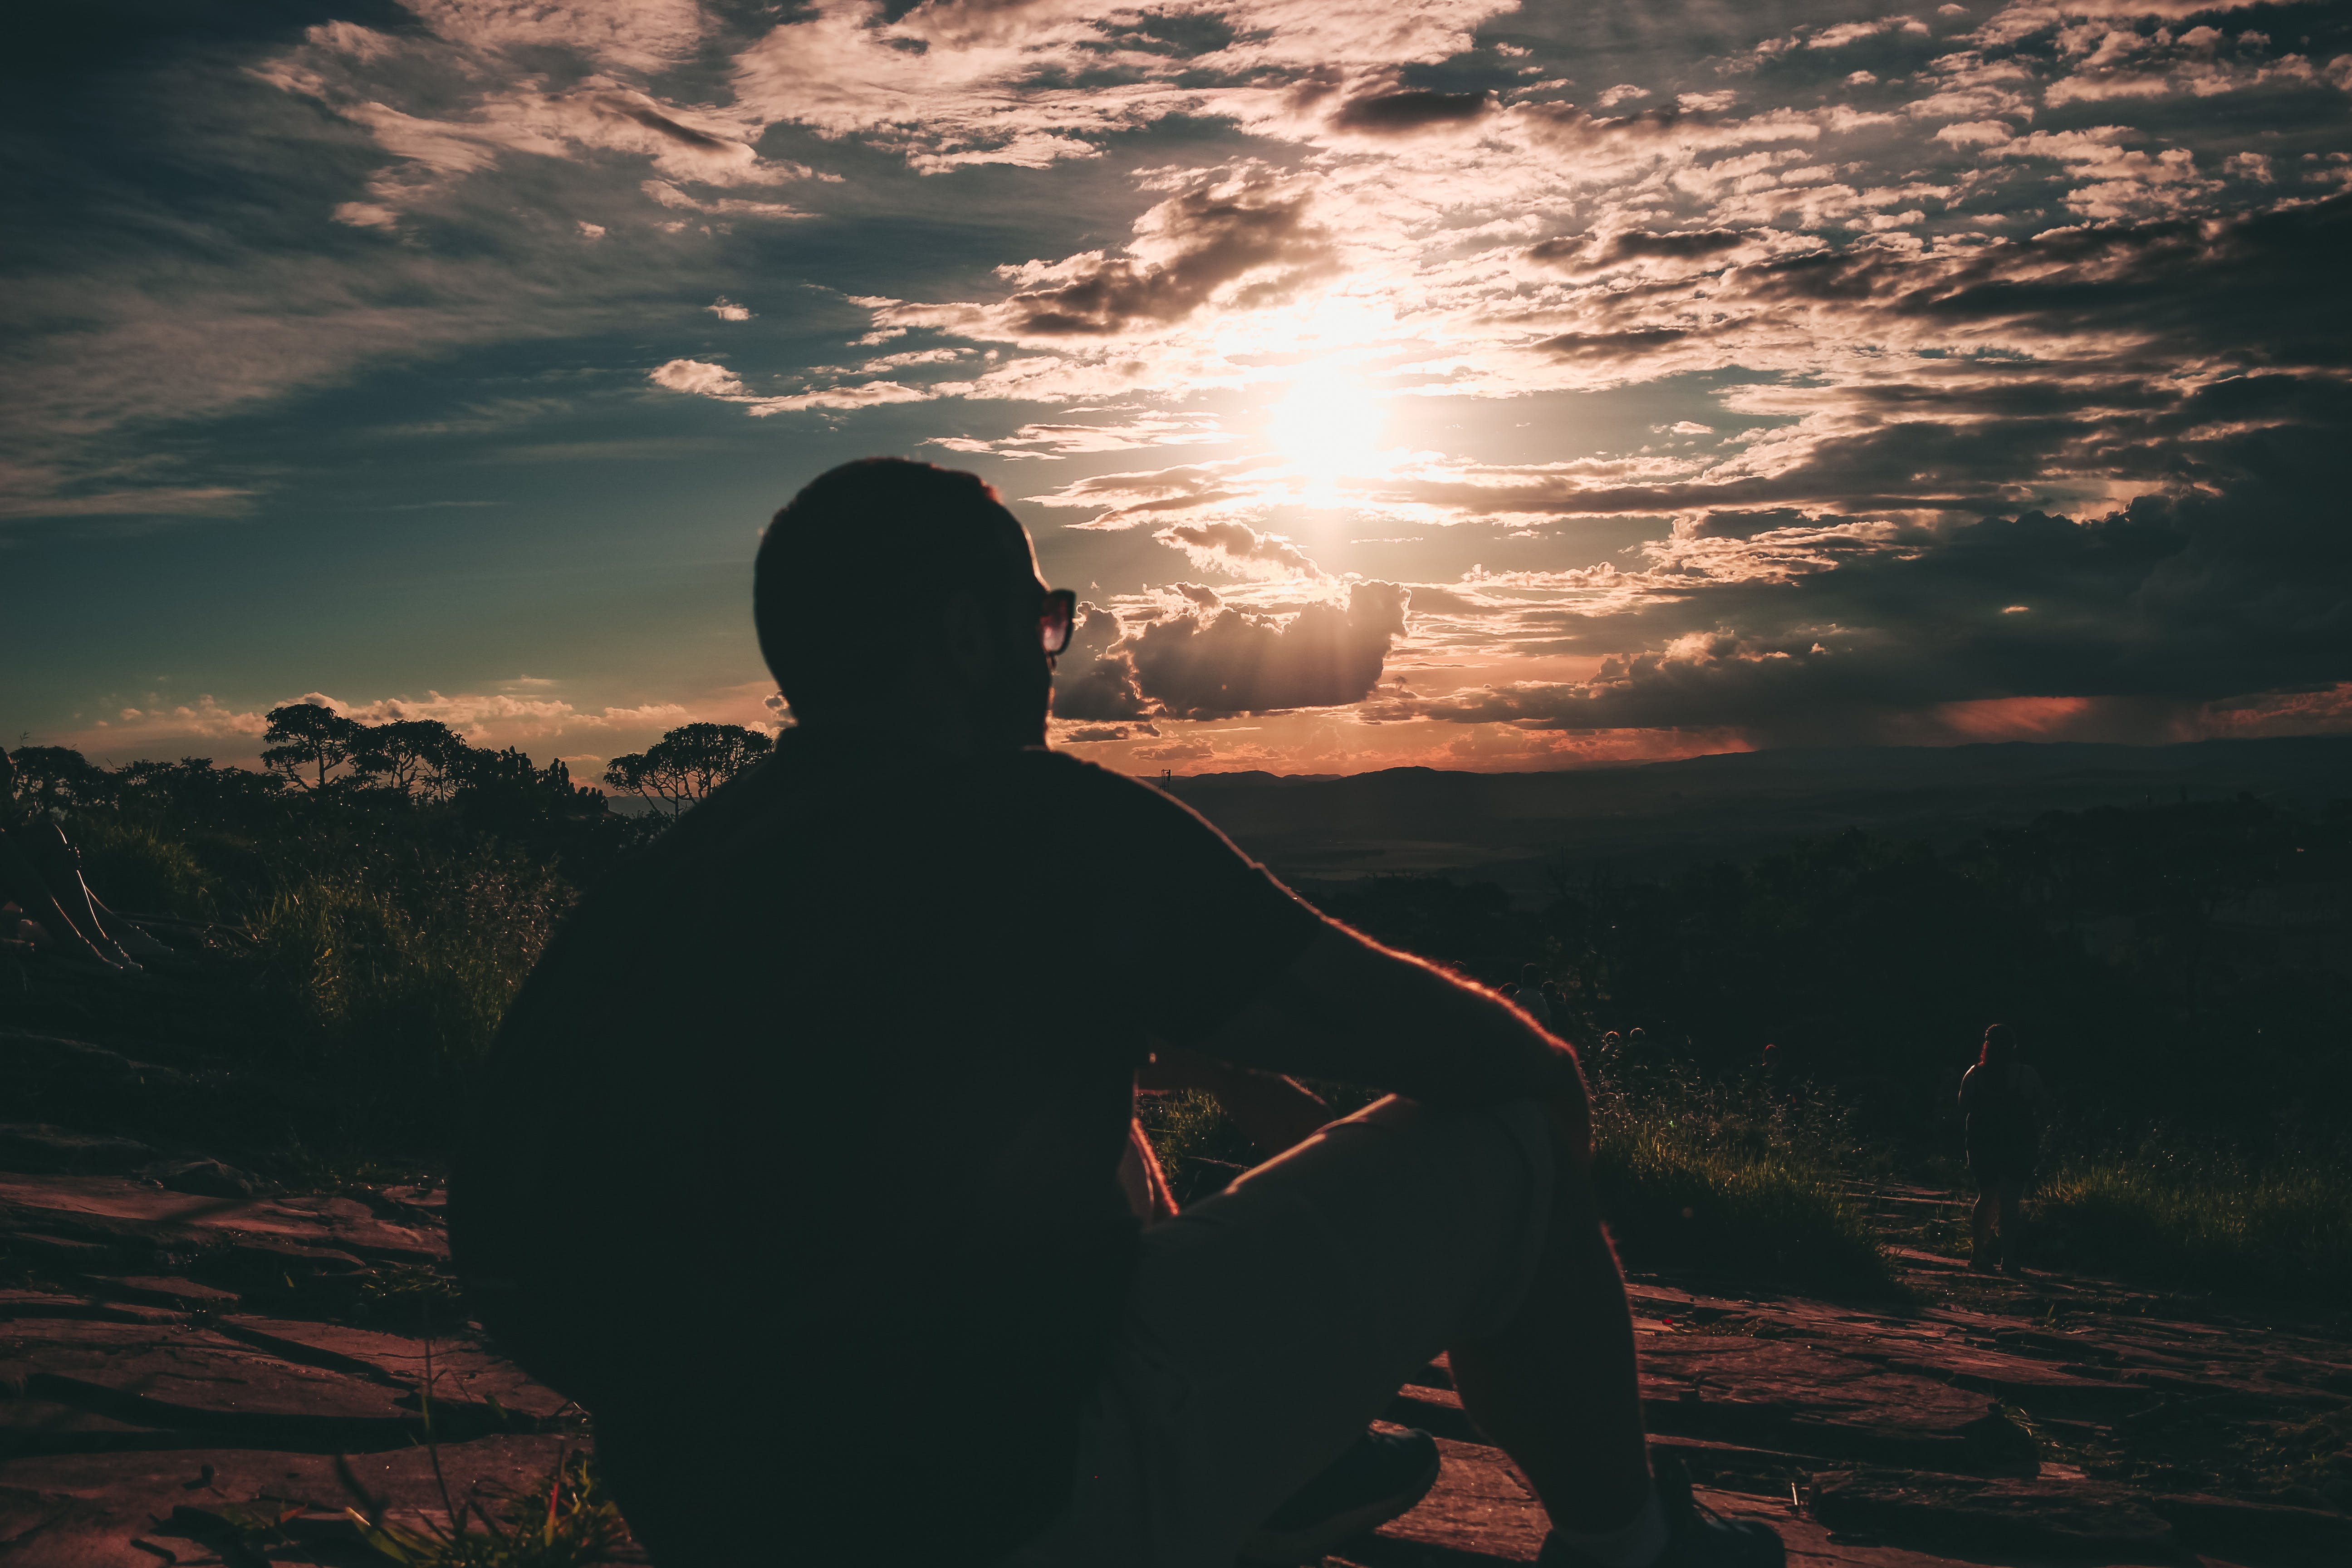 Free stock photo of sunset, man, sunglasses, mountain